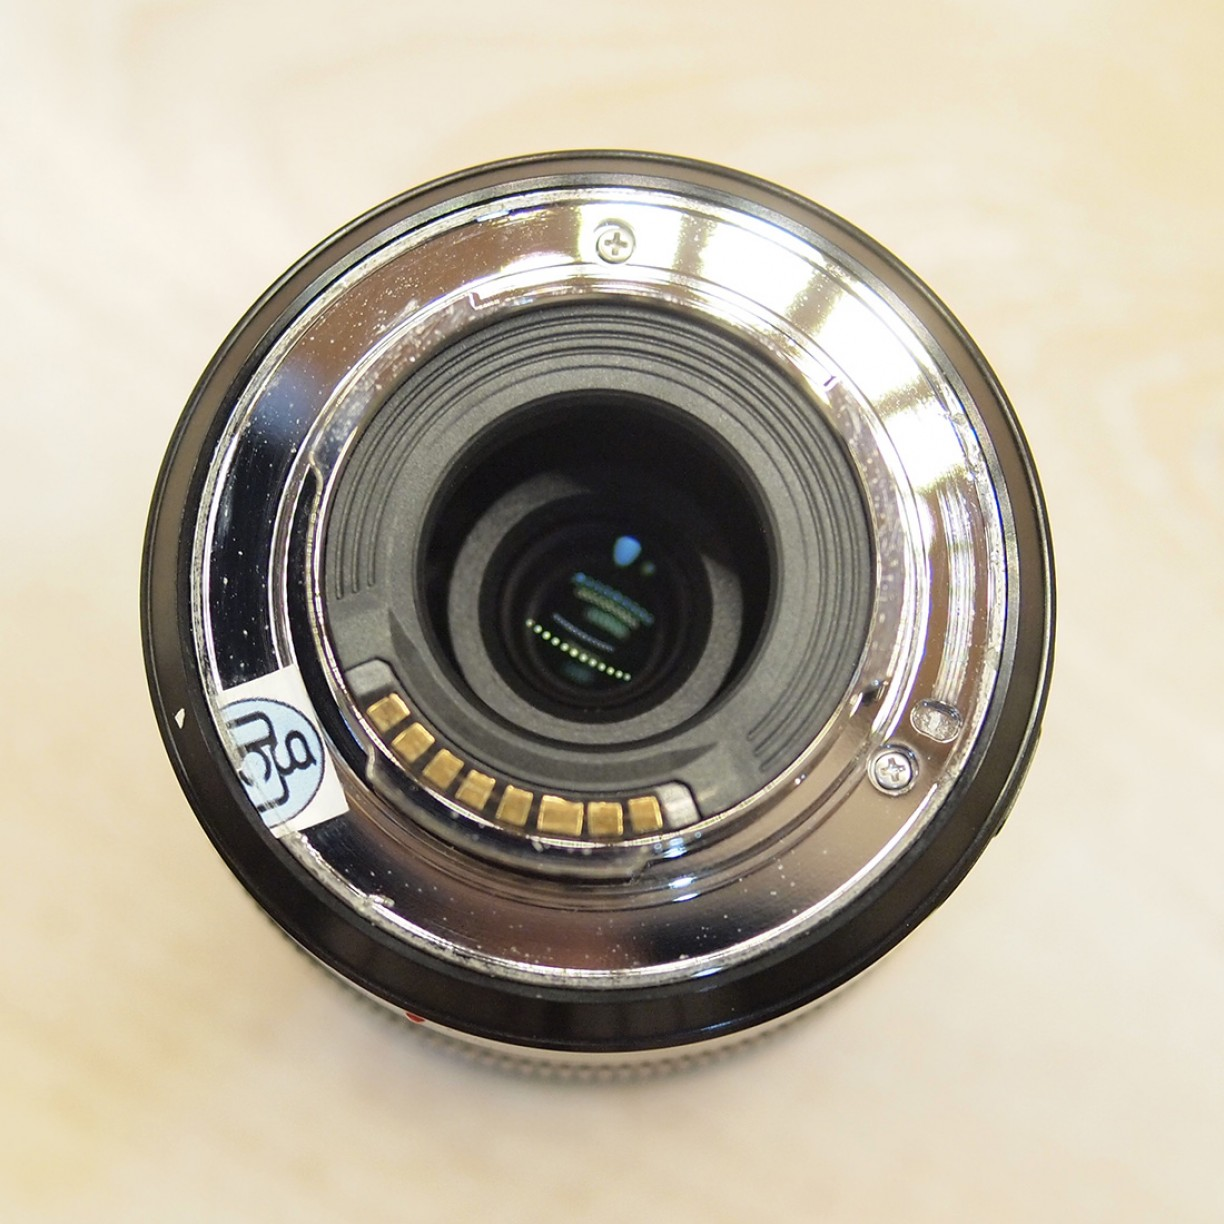 SAMSUNG 12-24mm f4-5.6 ED - GOOD CONDITION - 00RW